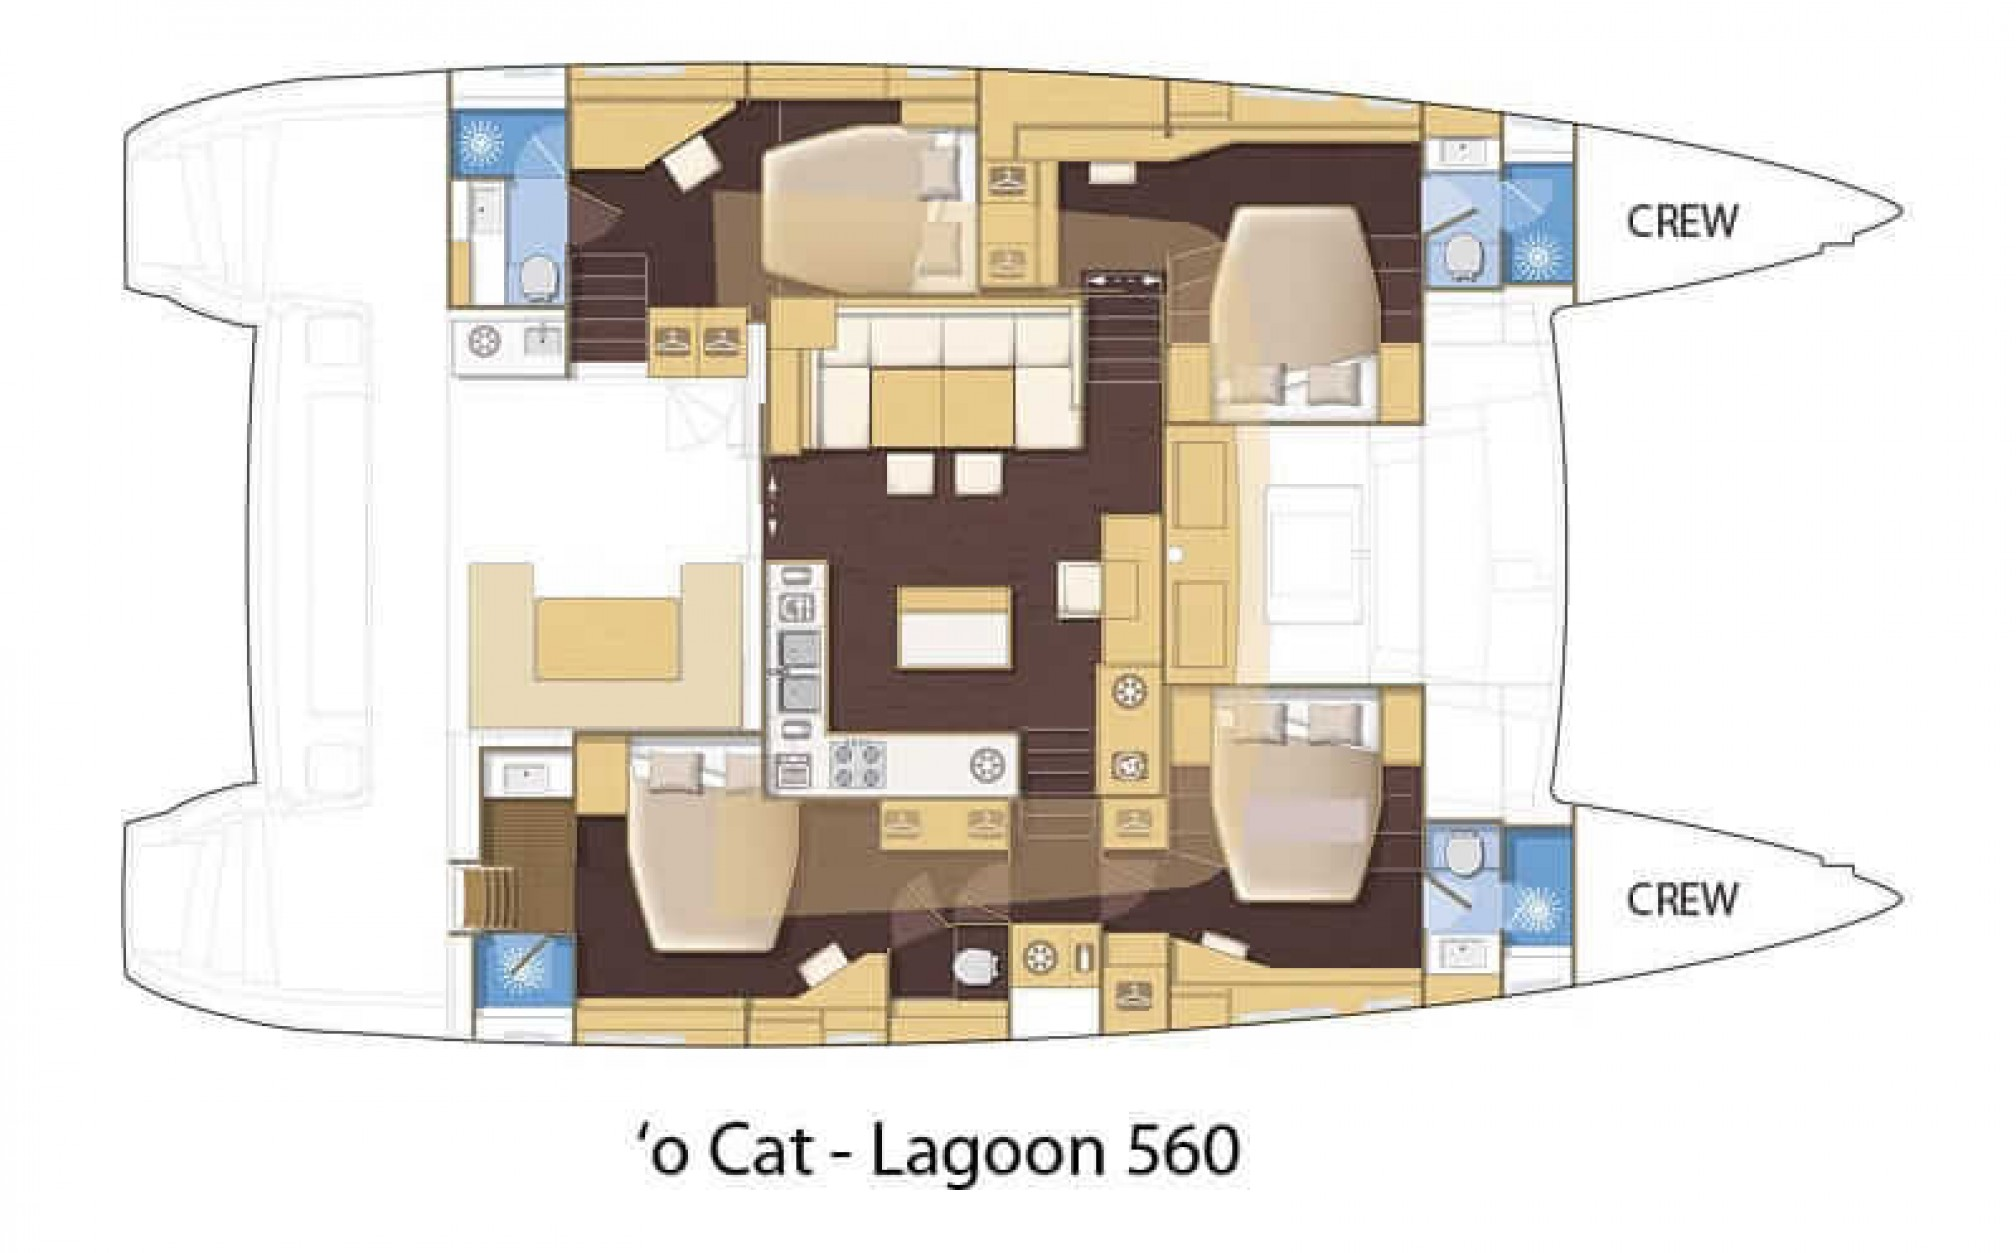 Lagoon 560 'O Cat' catamaran charter layout